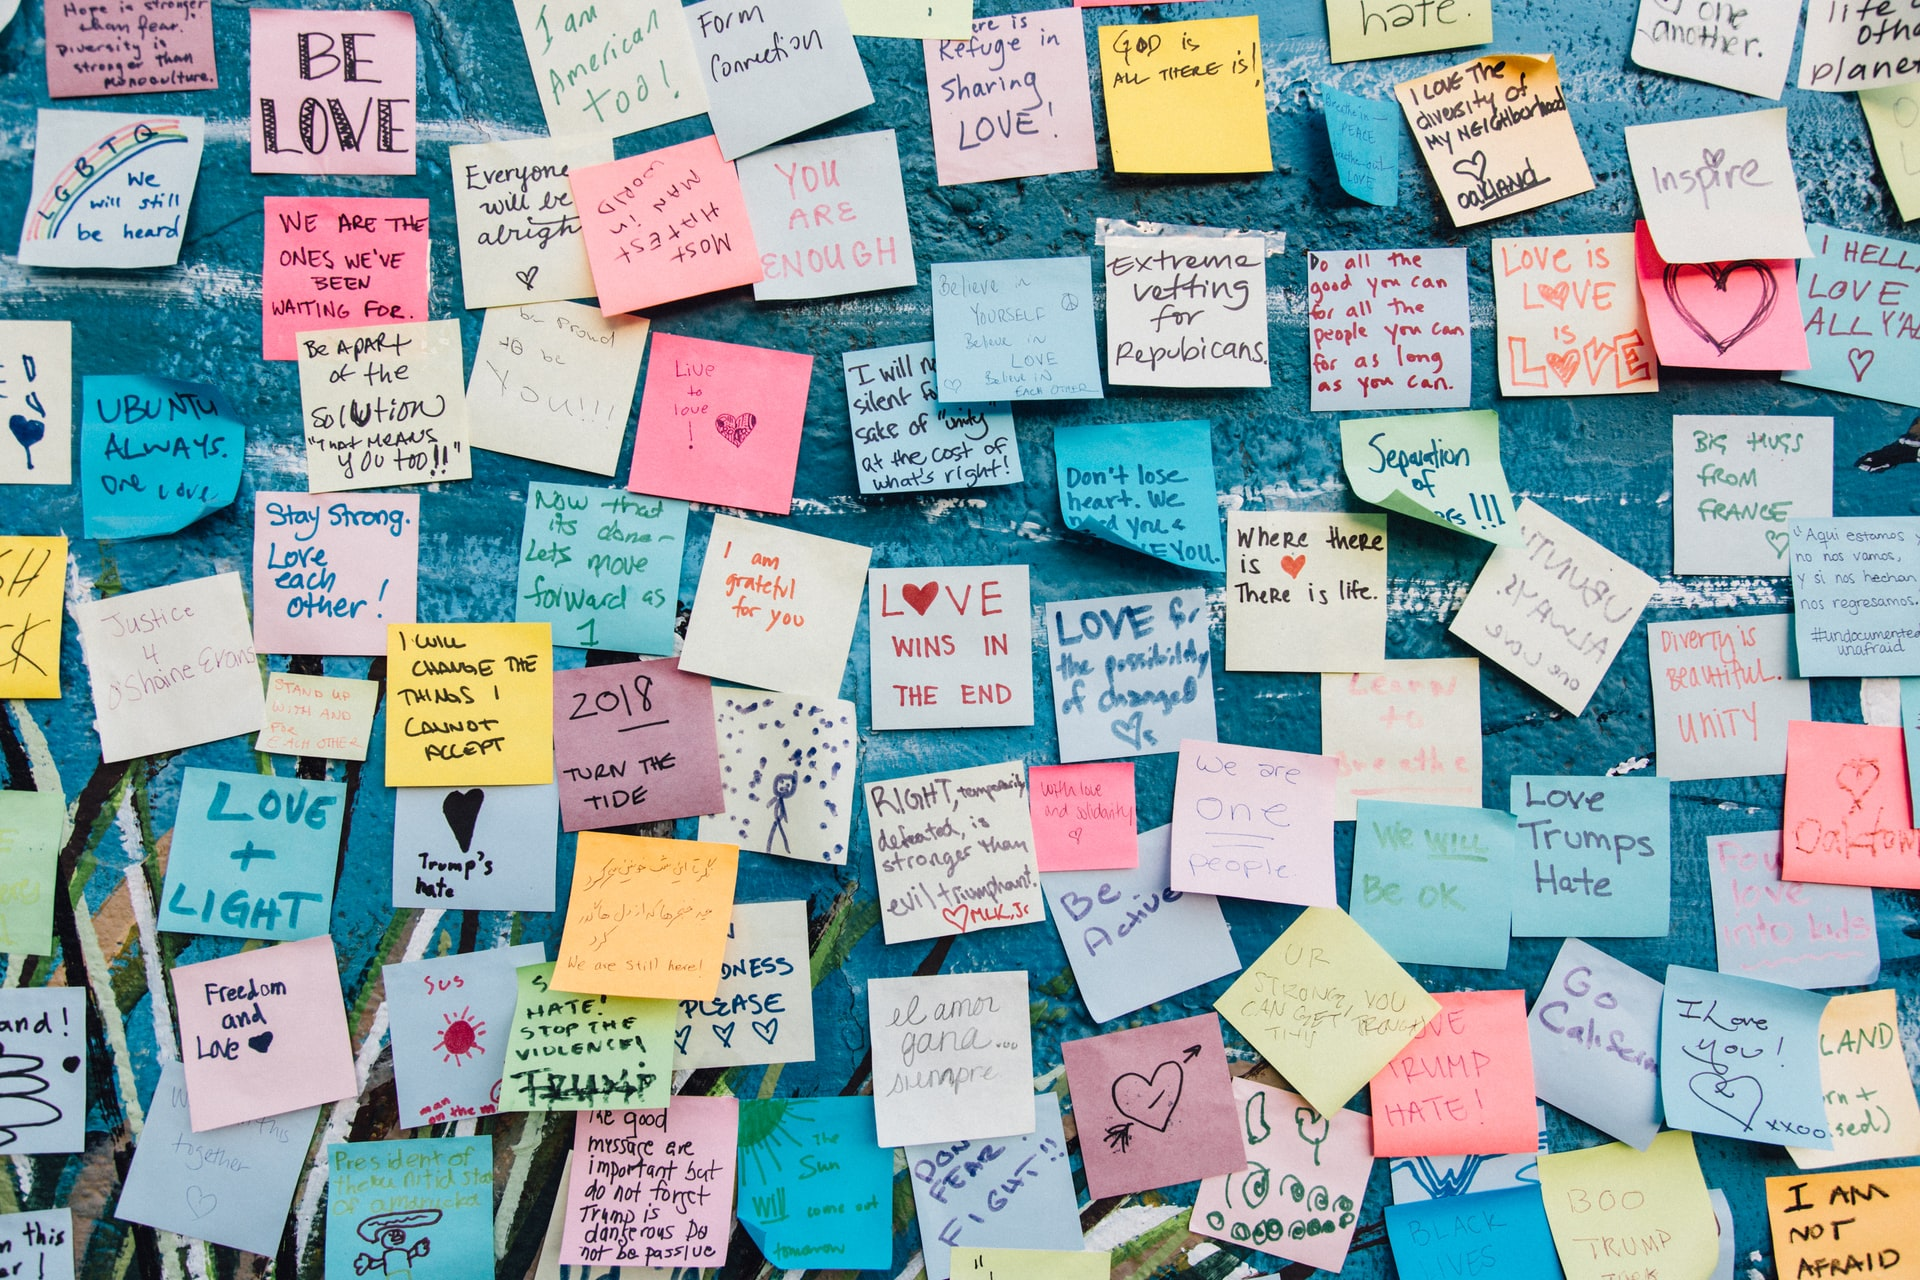 wall covered with sticky notes containing notes about love